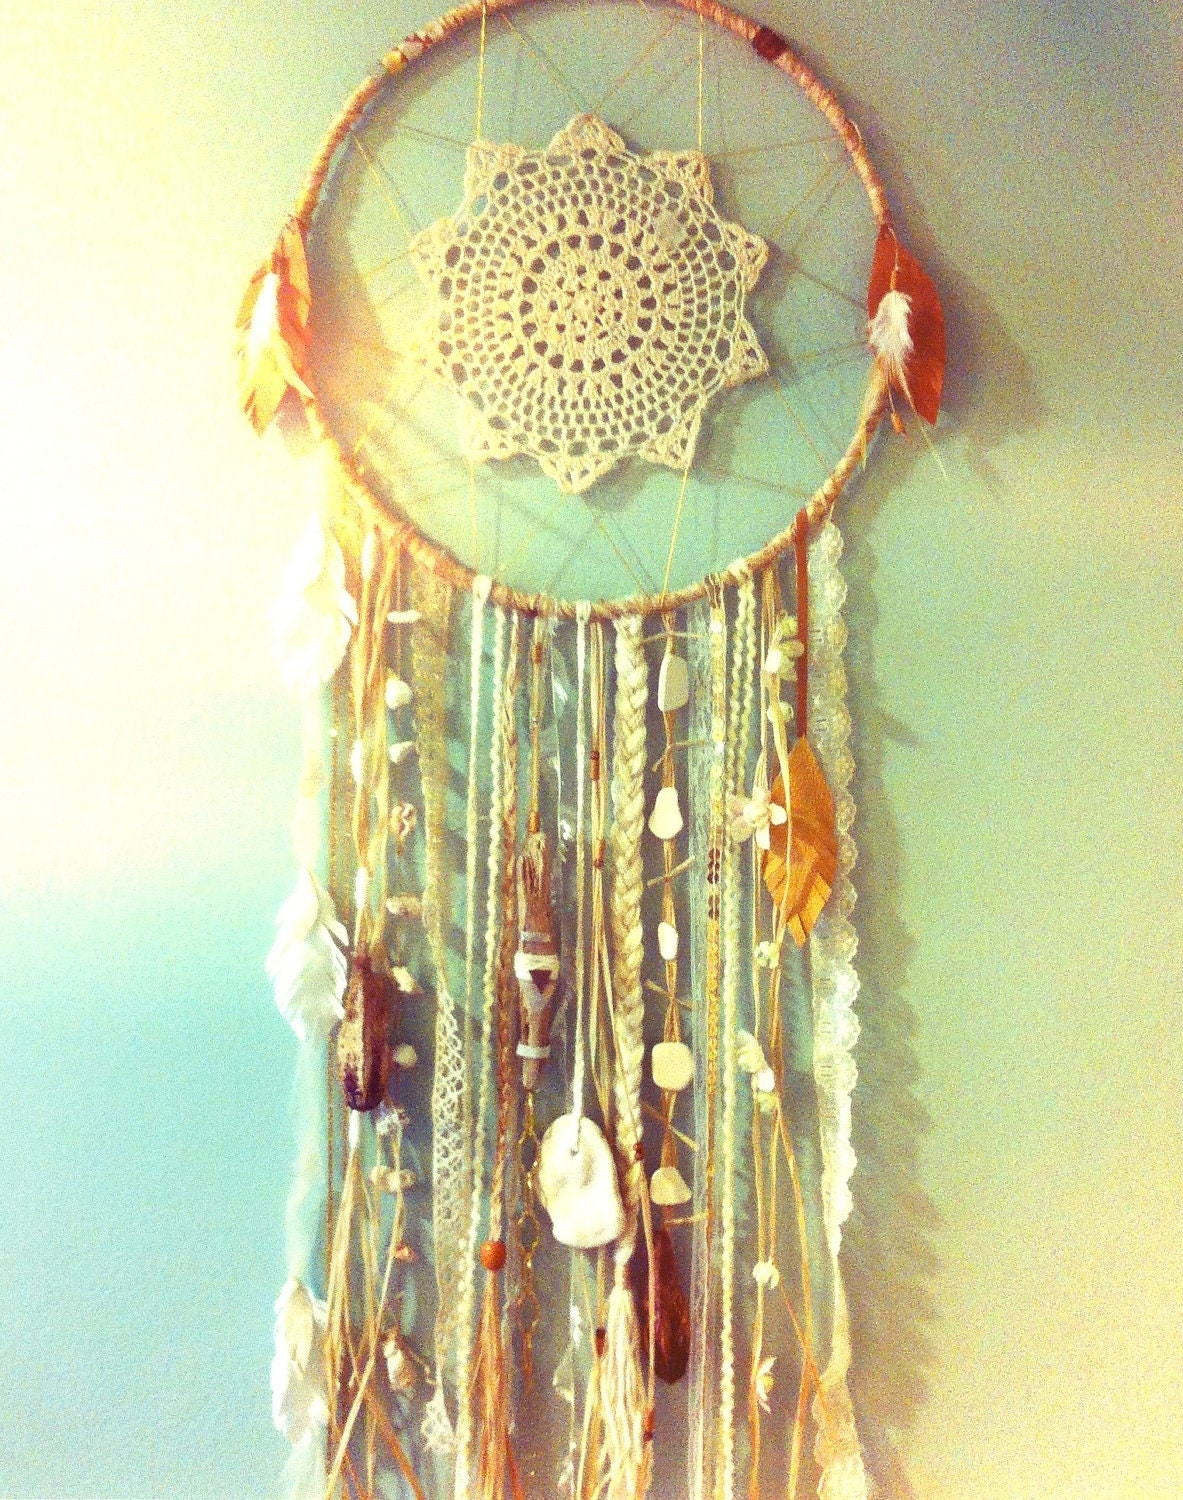 CUSTOM ORDER 14 inch Sea Dreamer Mermaid Dreamcatcher similar to shown, your choice - CosmicAmerican